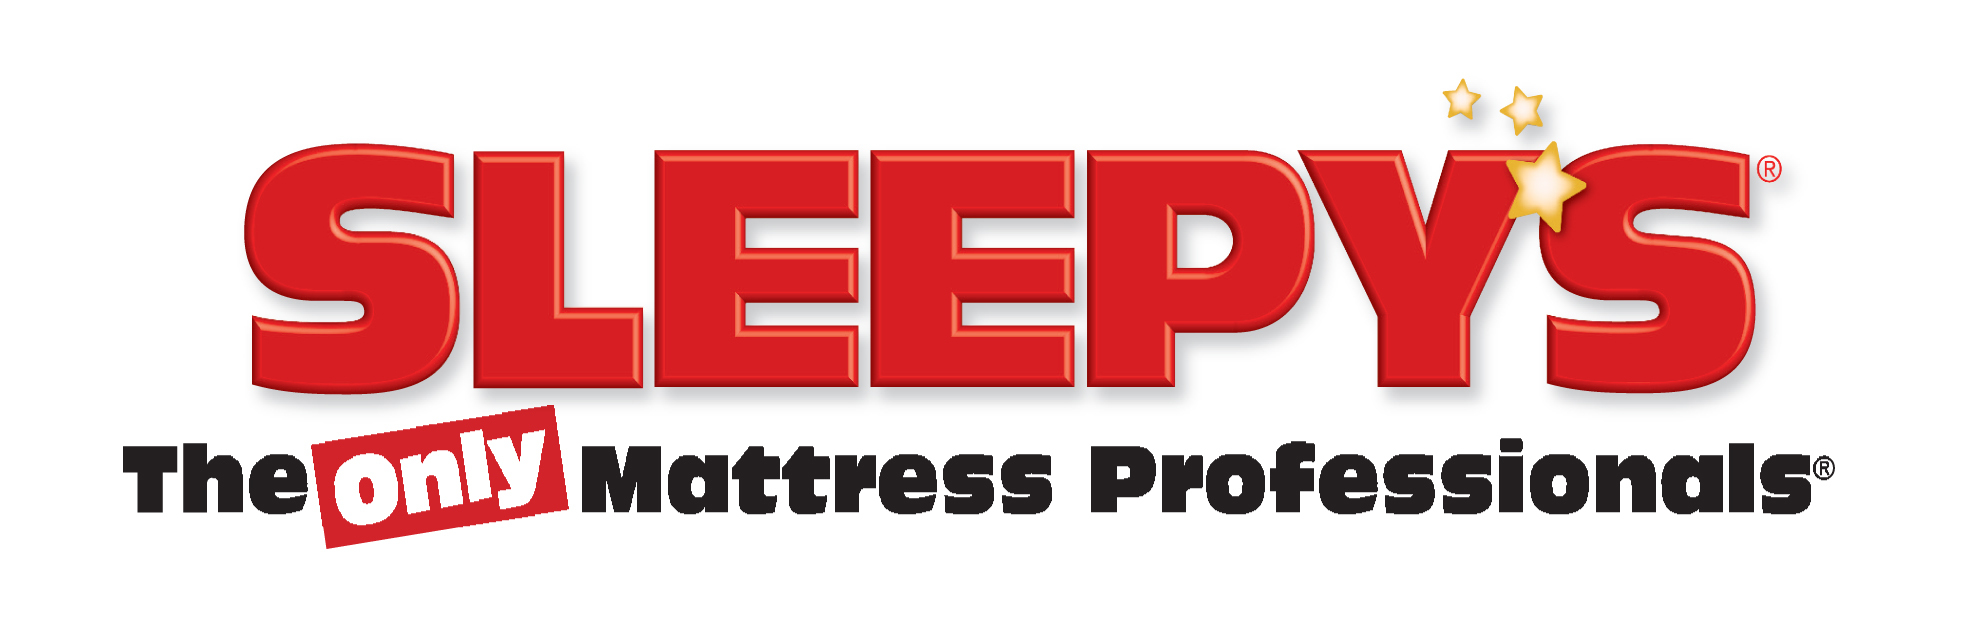 investorplace mfrm mattress firm s buy sleepy to